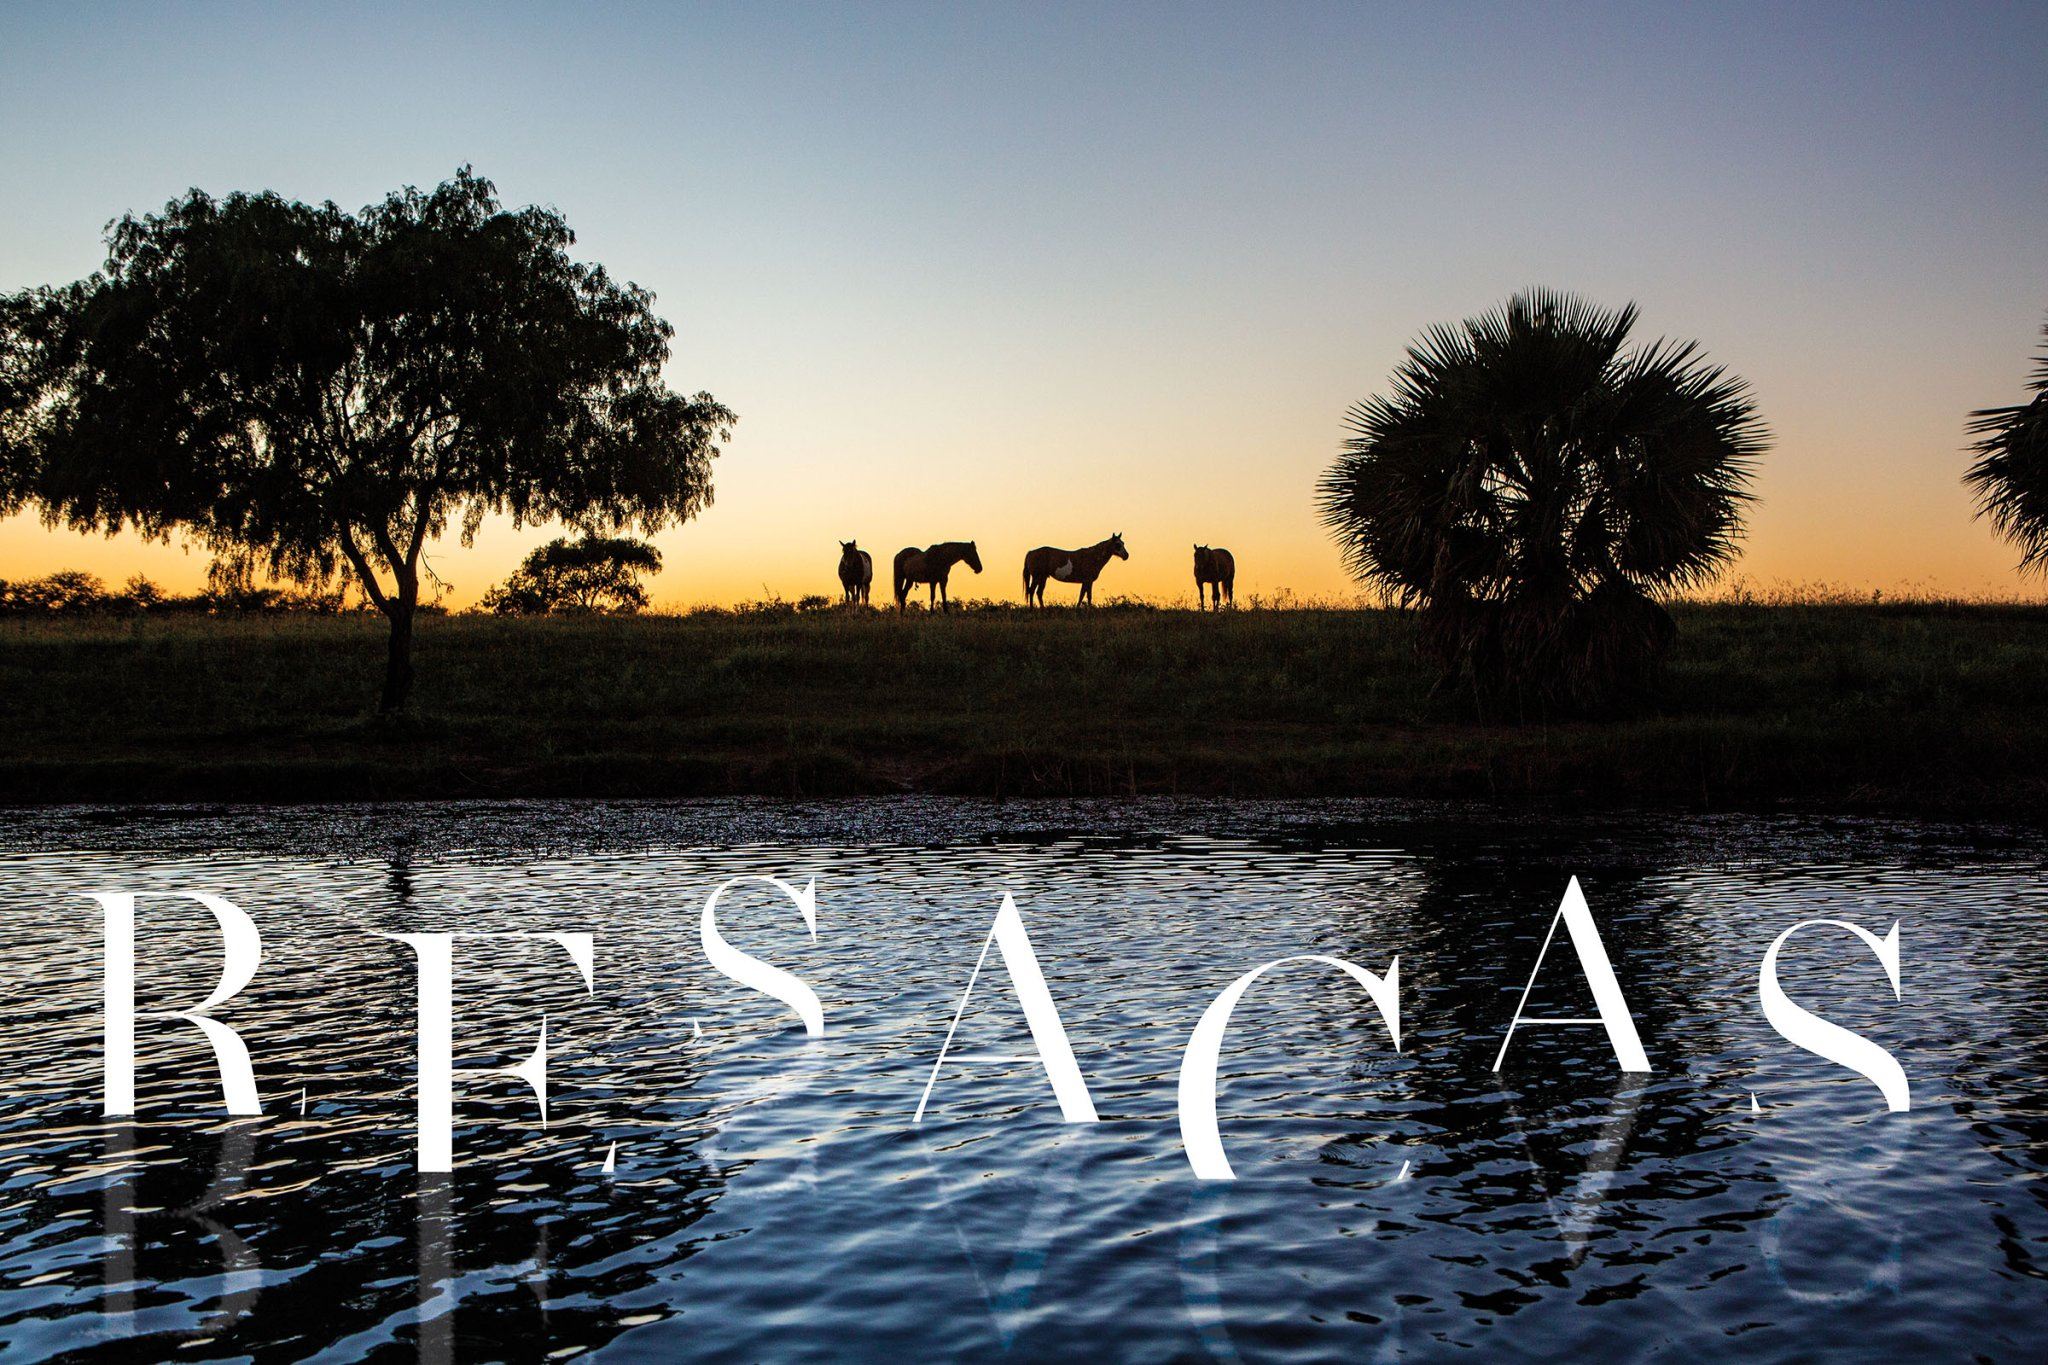 Resacas are the Natural Wonders of Texas' Rio Grande Valley